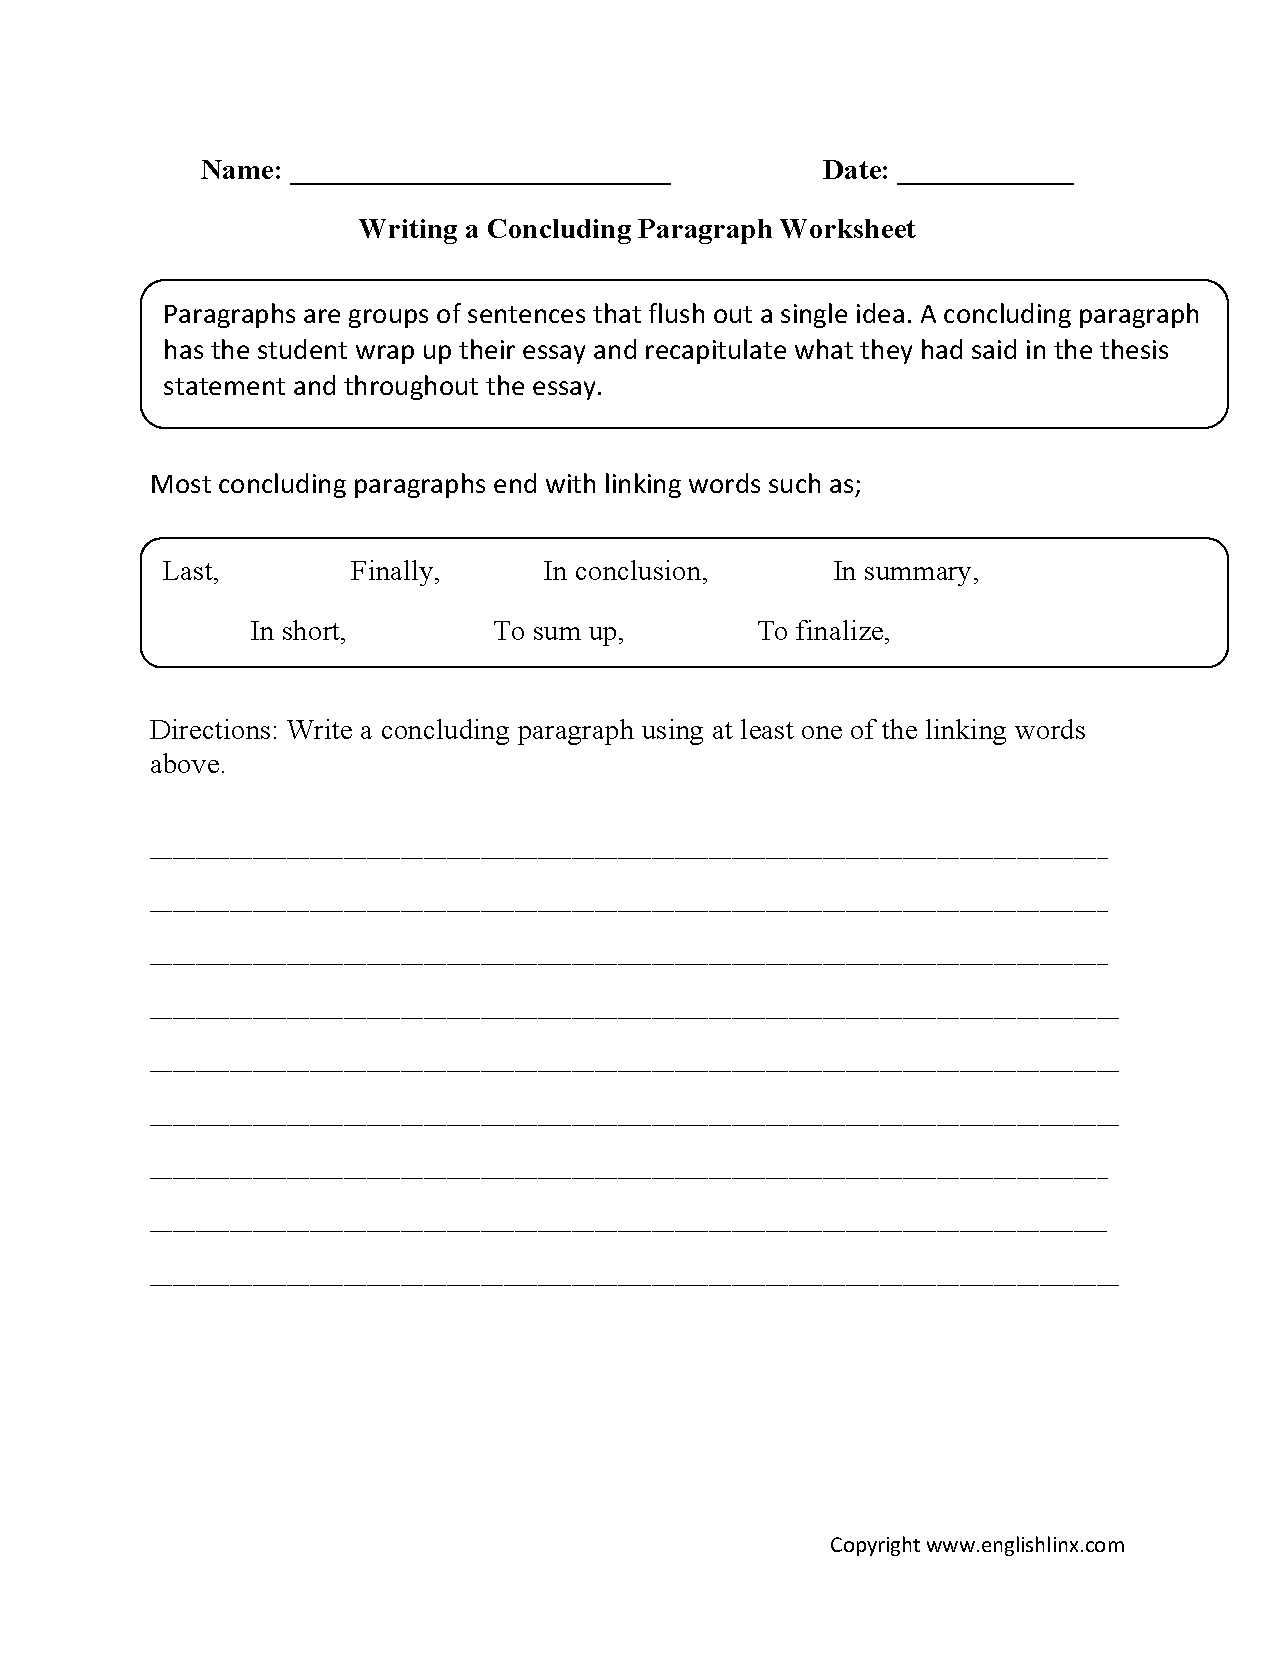 Worksheet How To Write A Paragraph Worksheets writing worksheets paragraph concluding worksheets